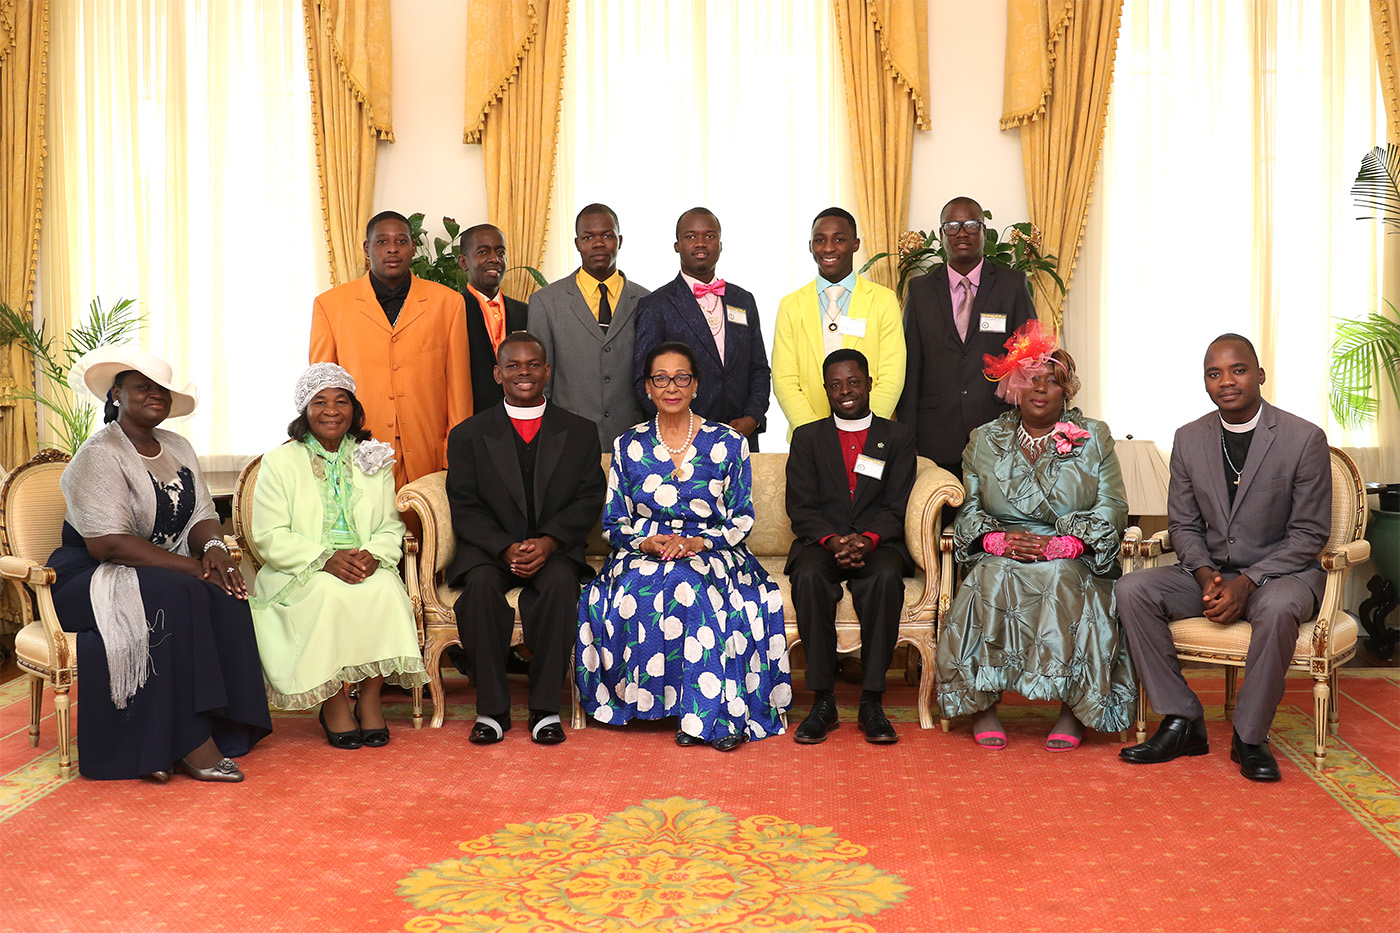 Christian Tabernacle Fellowship ambassadors pay courtesy call on Governor General